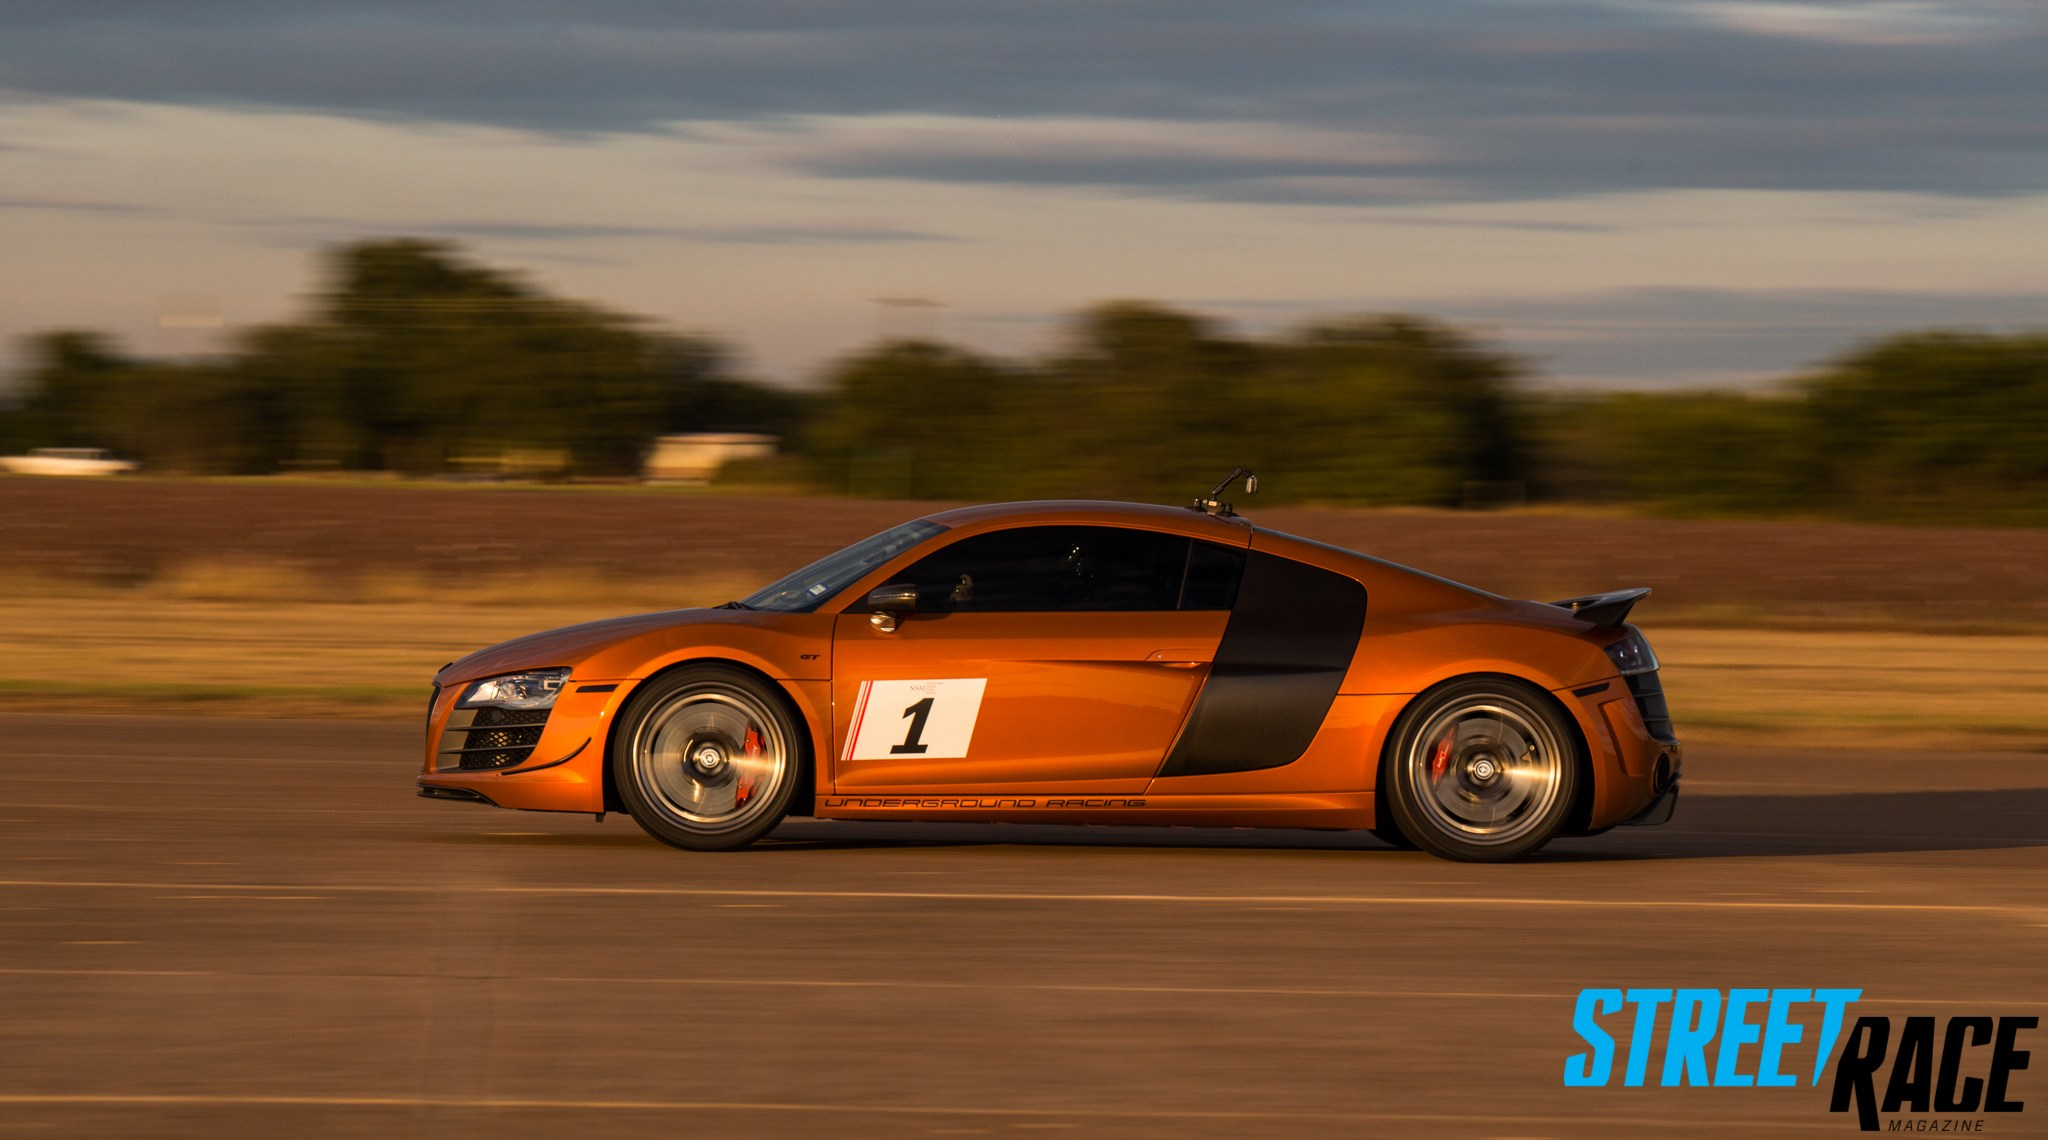 The UGR Audi R8 that set the highest trap speed of the day at 220mph Photo: streetracemag